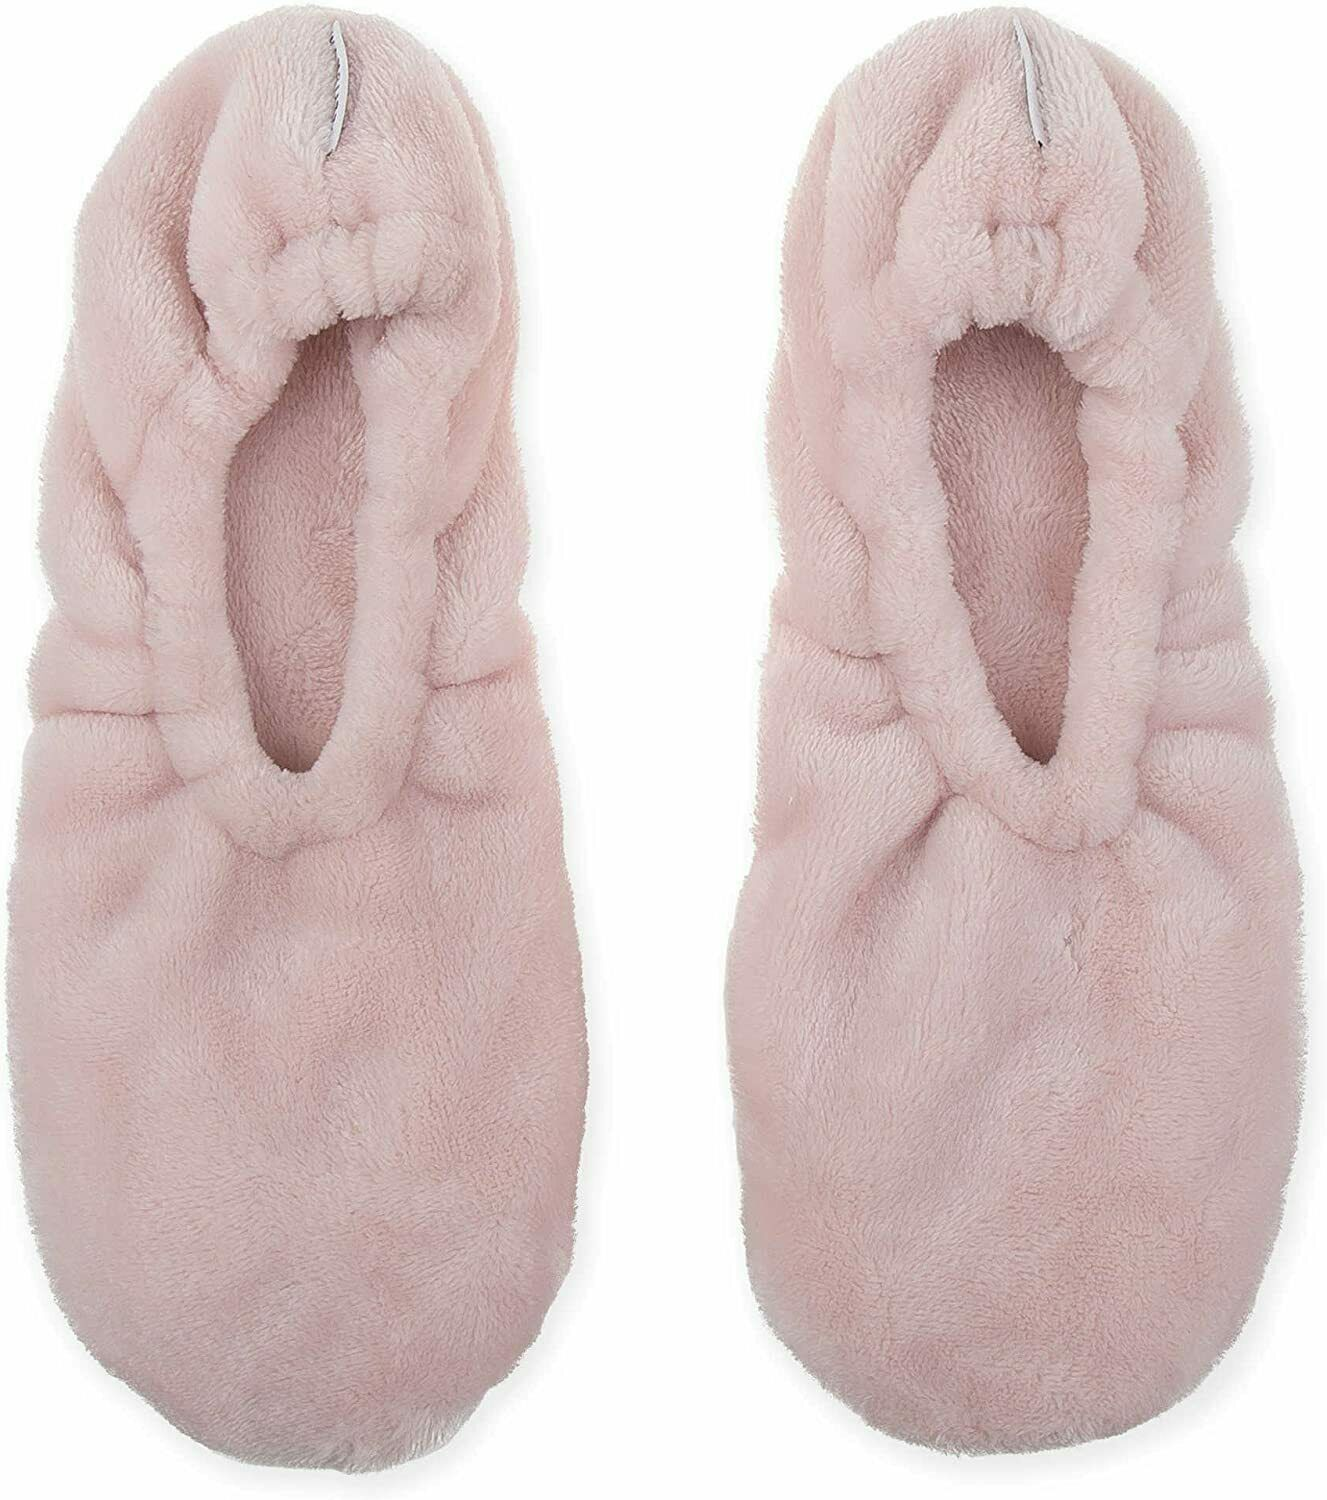 Primary image for Wamsutta Ultra Plush Memory Foam Footies Slippers One Size Fits Most Pink